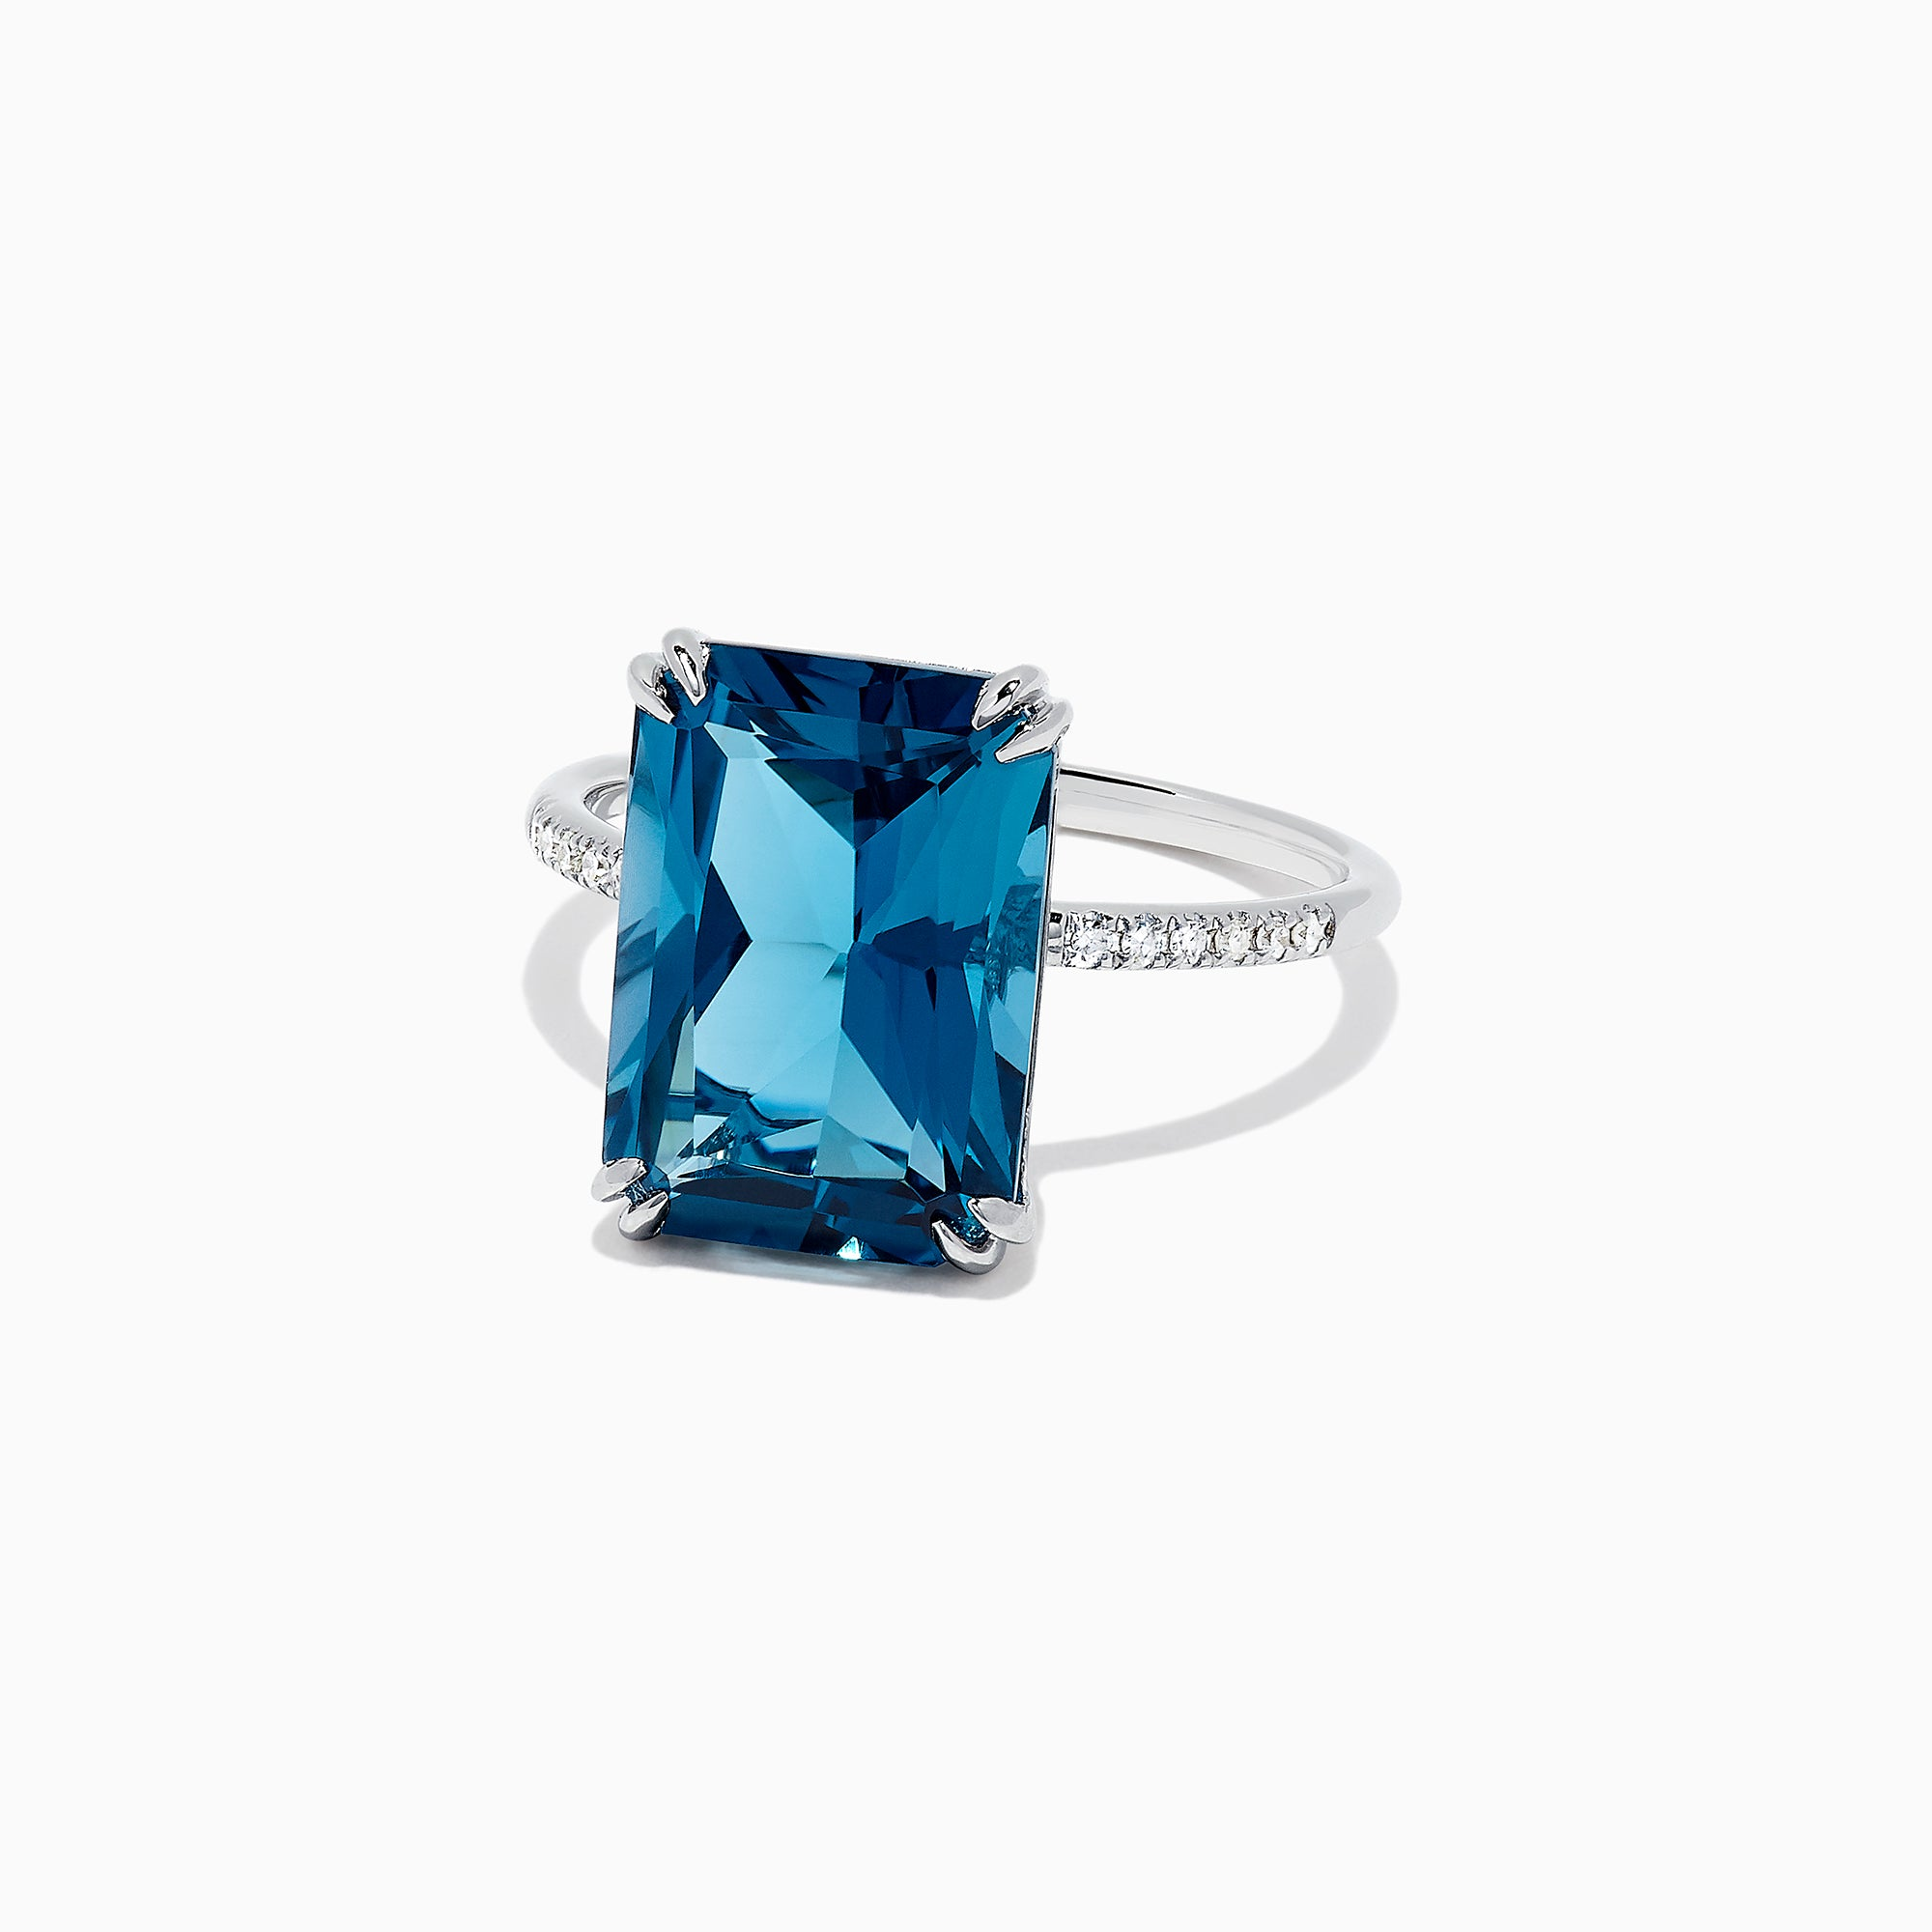 Effy Ocean Blue 14K Gold London Blue Topaz and Diamond Ring, 8.39 TCW